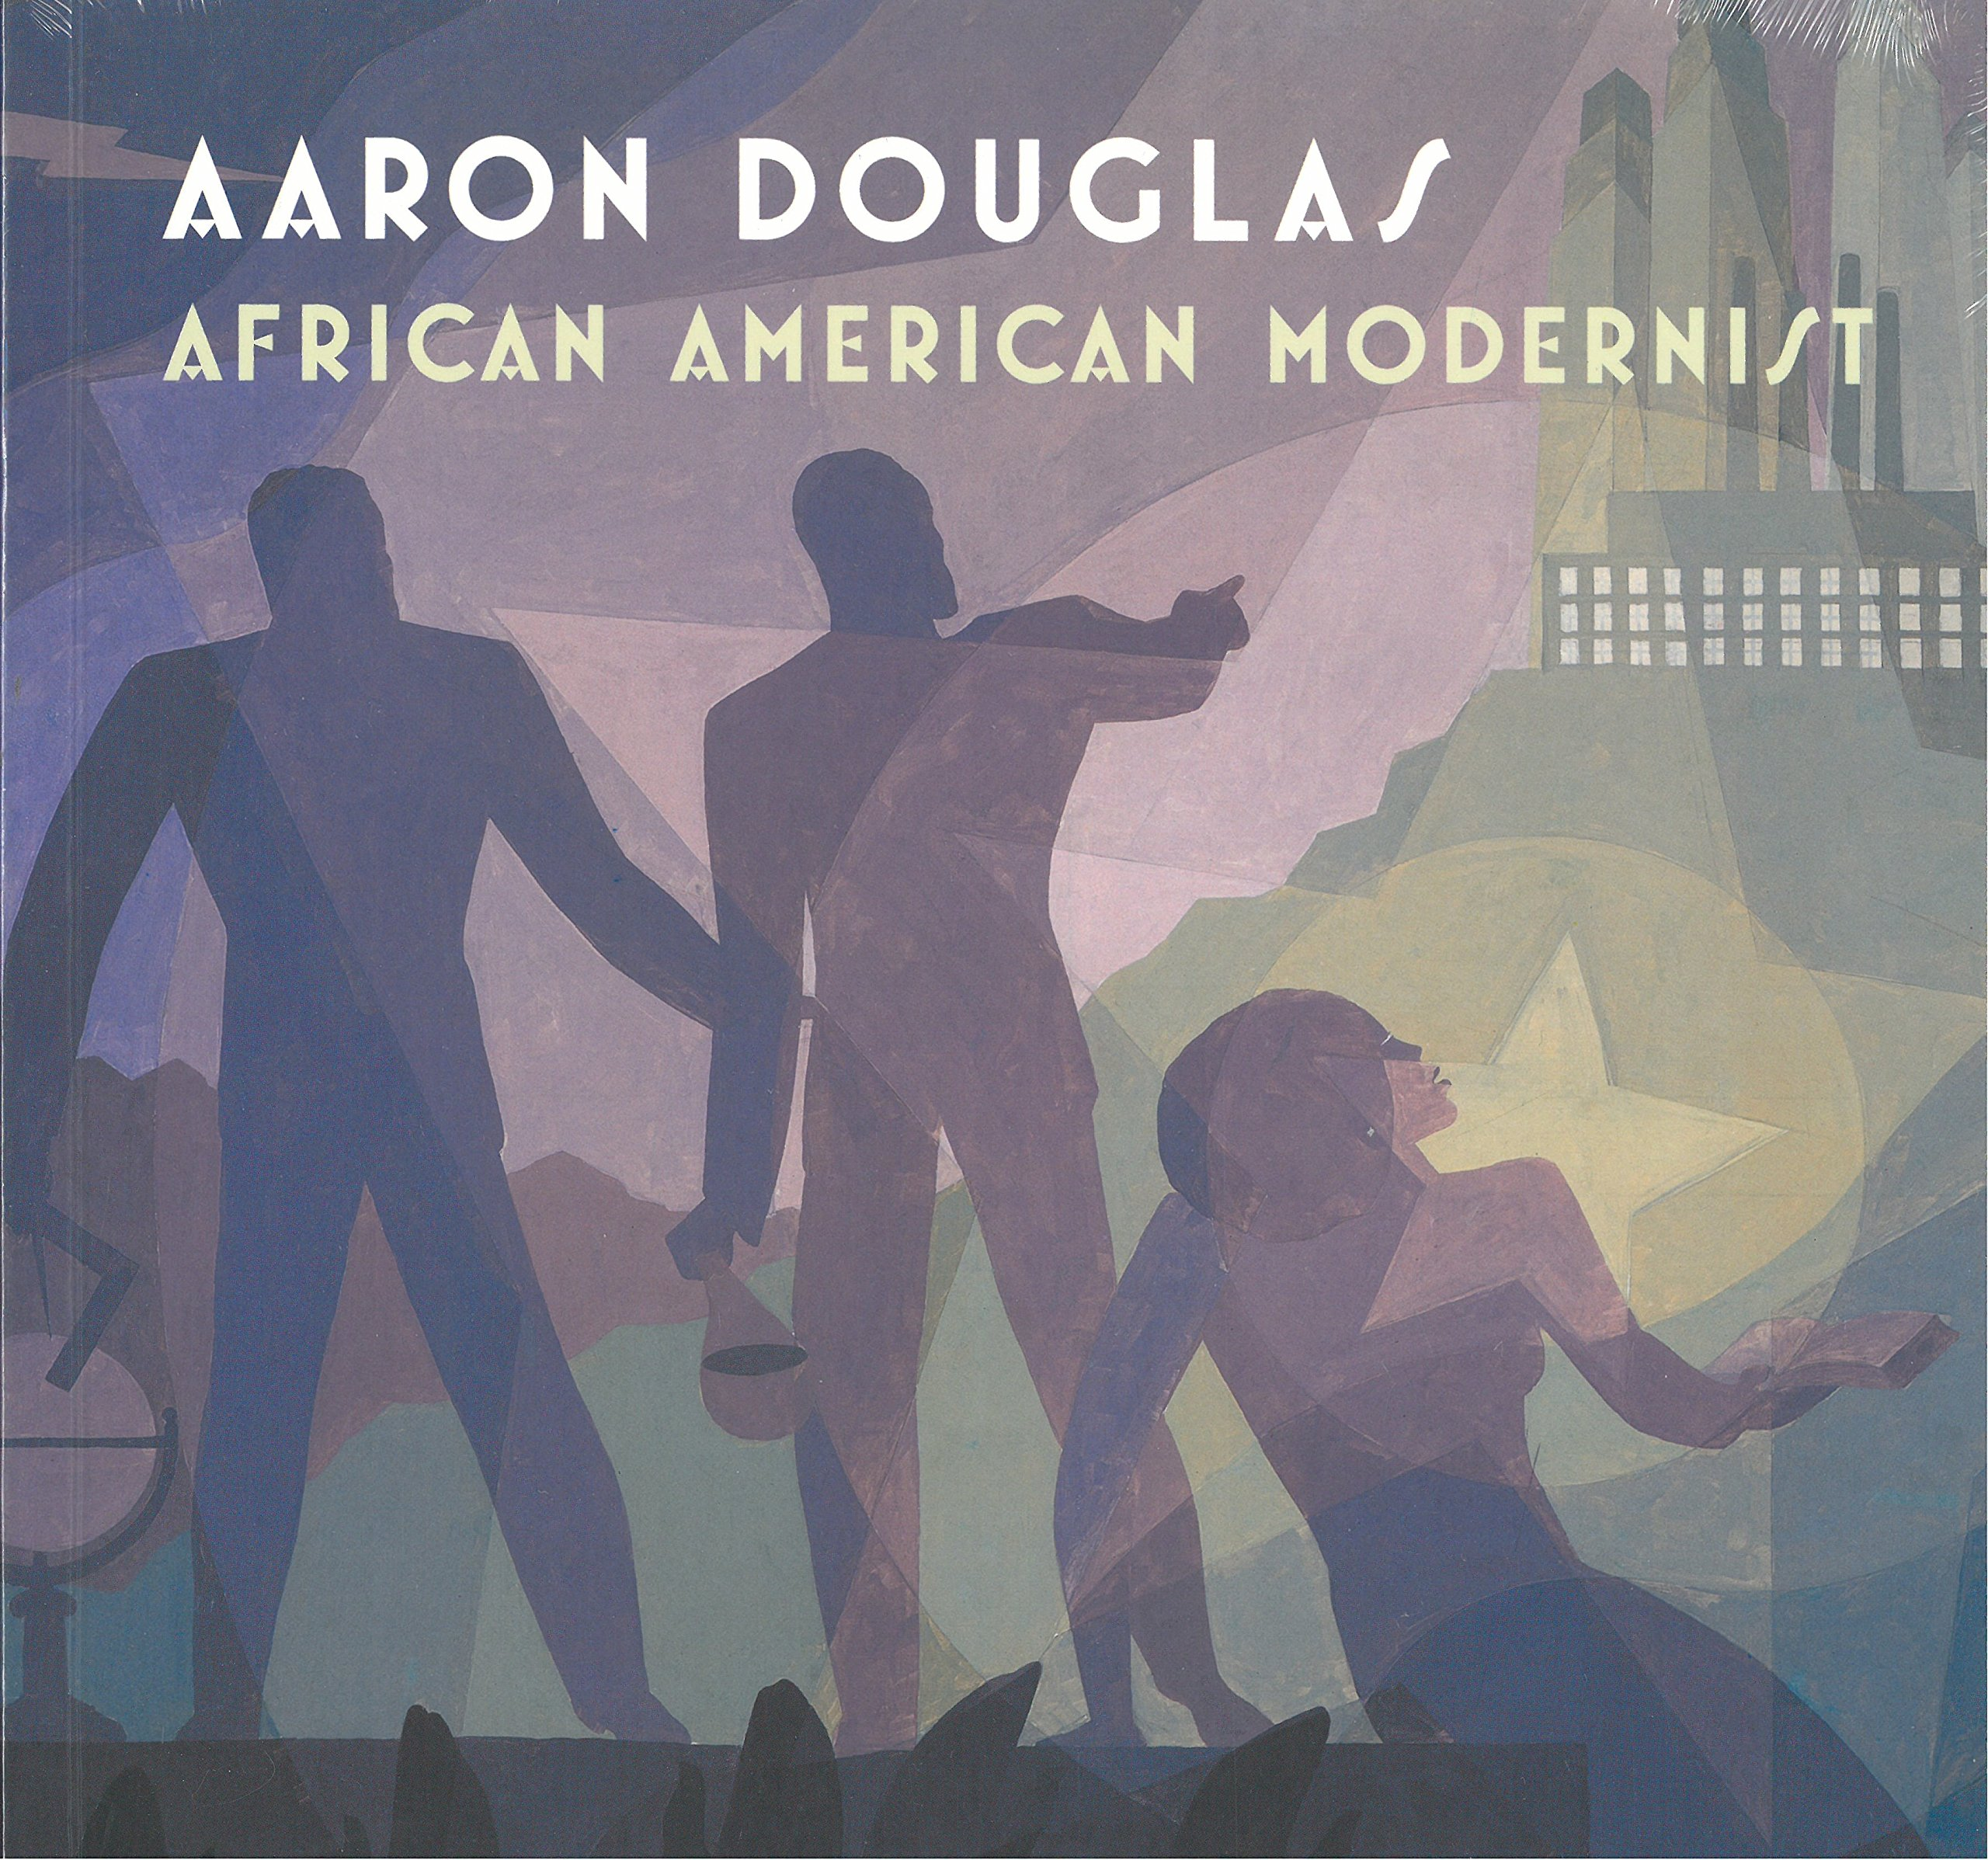 Aaron Douglas 5 facts